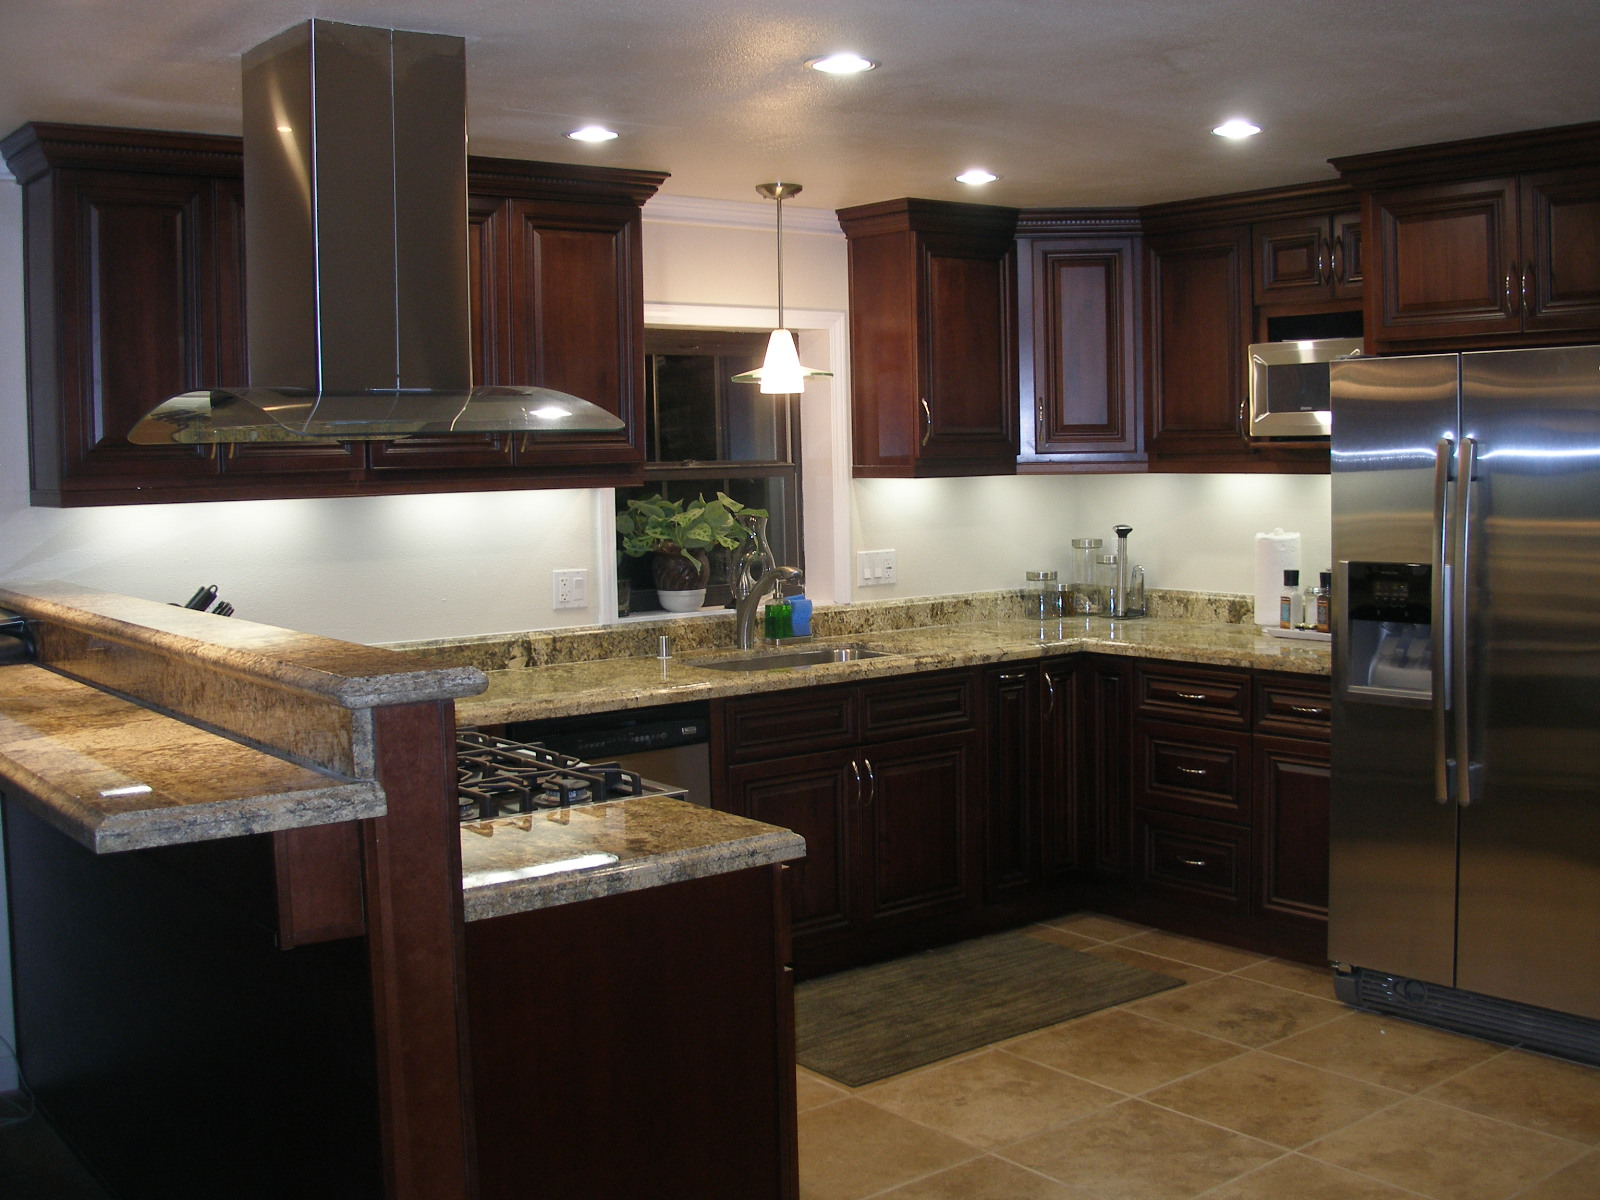 Image gallery kitchen redesign for Remodeling my kitchen ideas